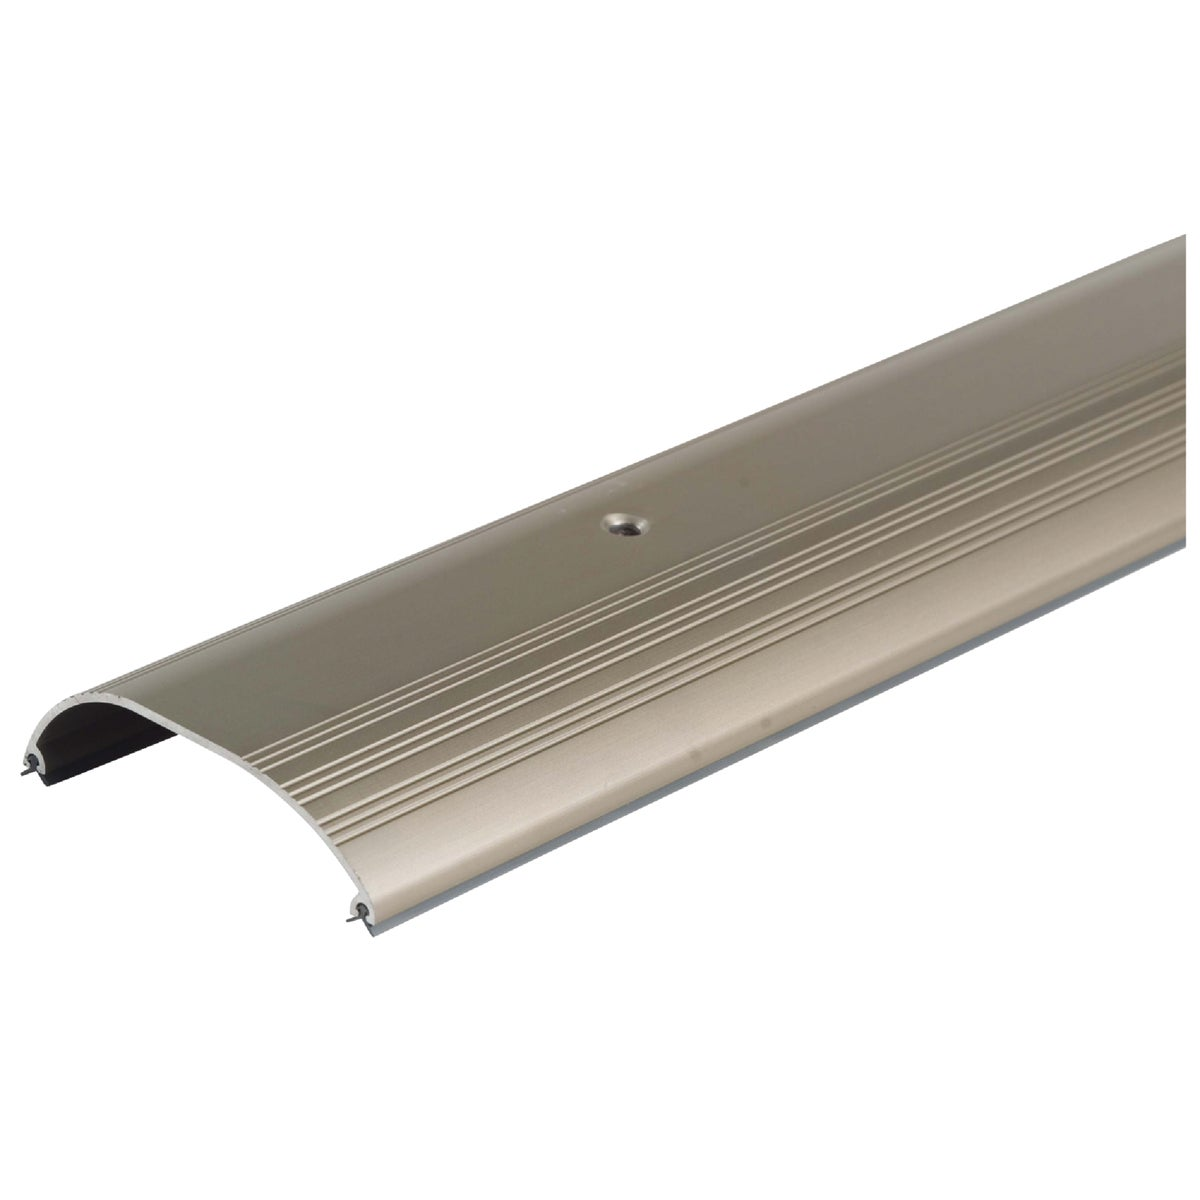 4X6 NKL HI TOP THRESHOLD - 25742 by M D Building Prod